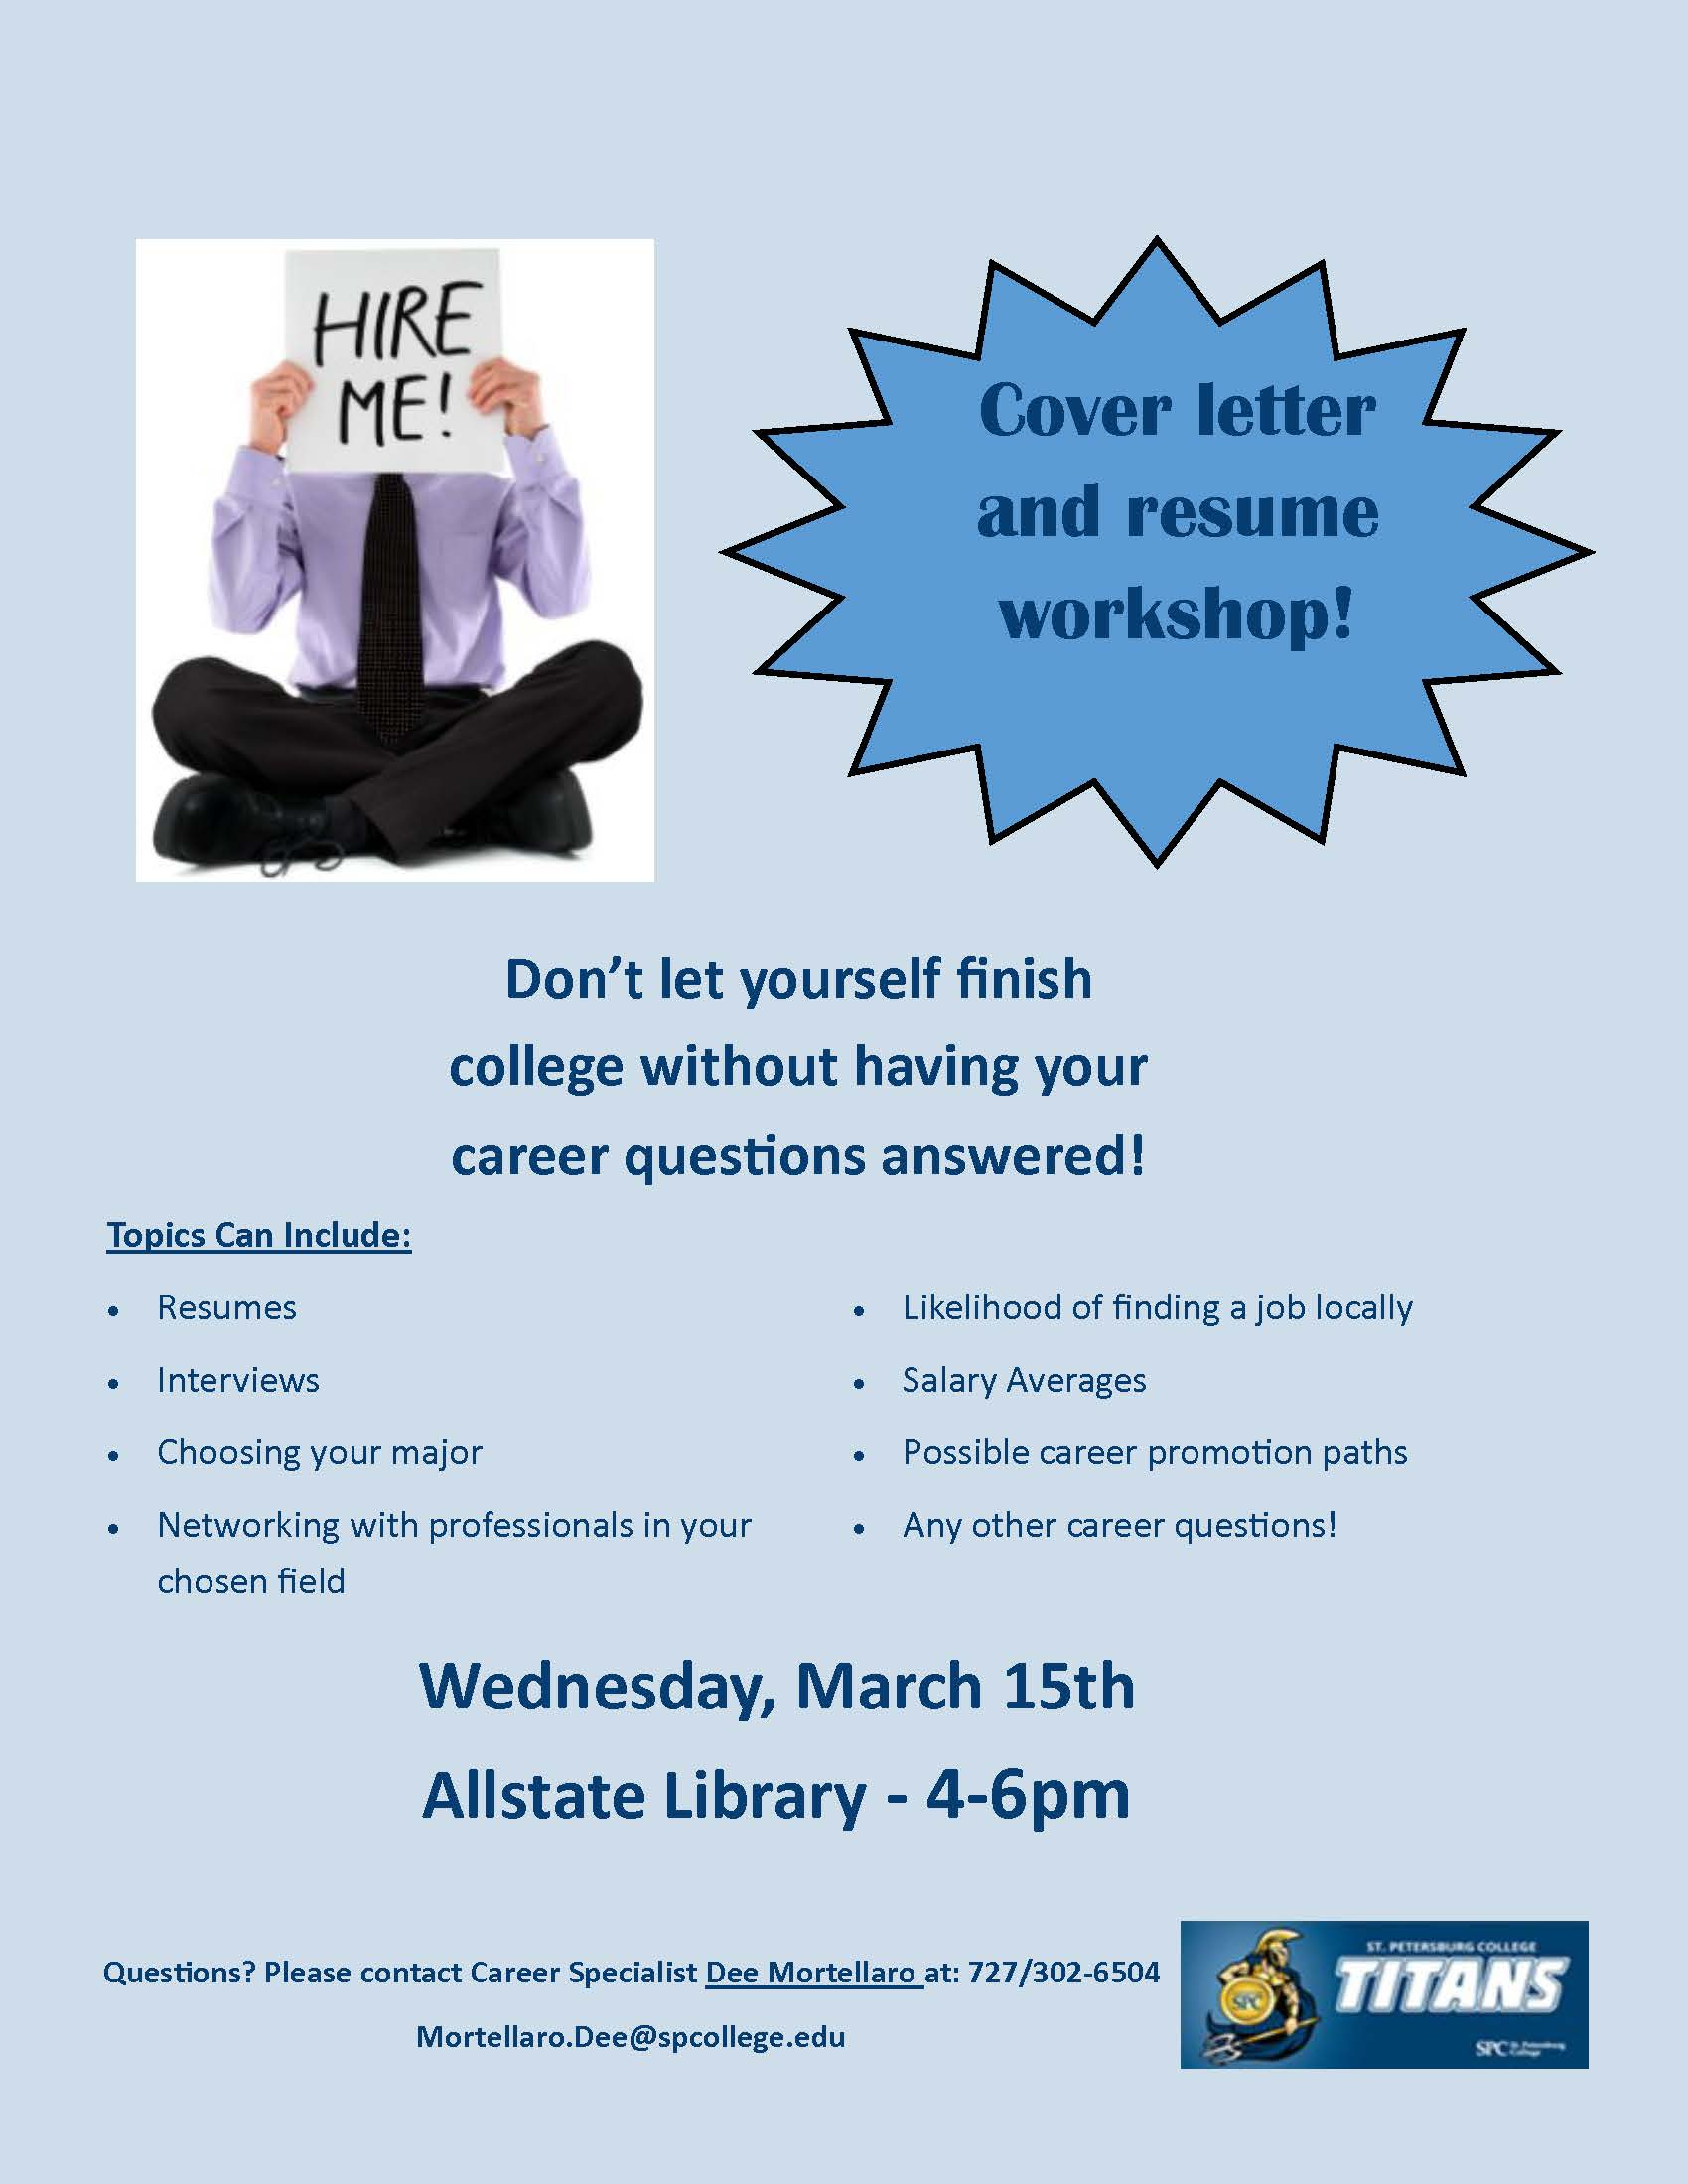 spc allstate presents  resume and cover letter workshop